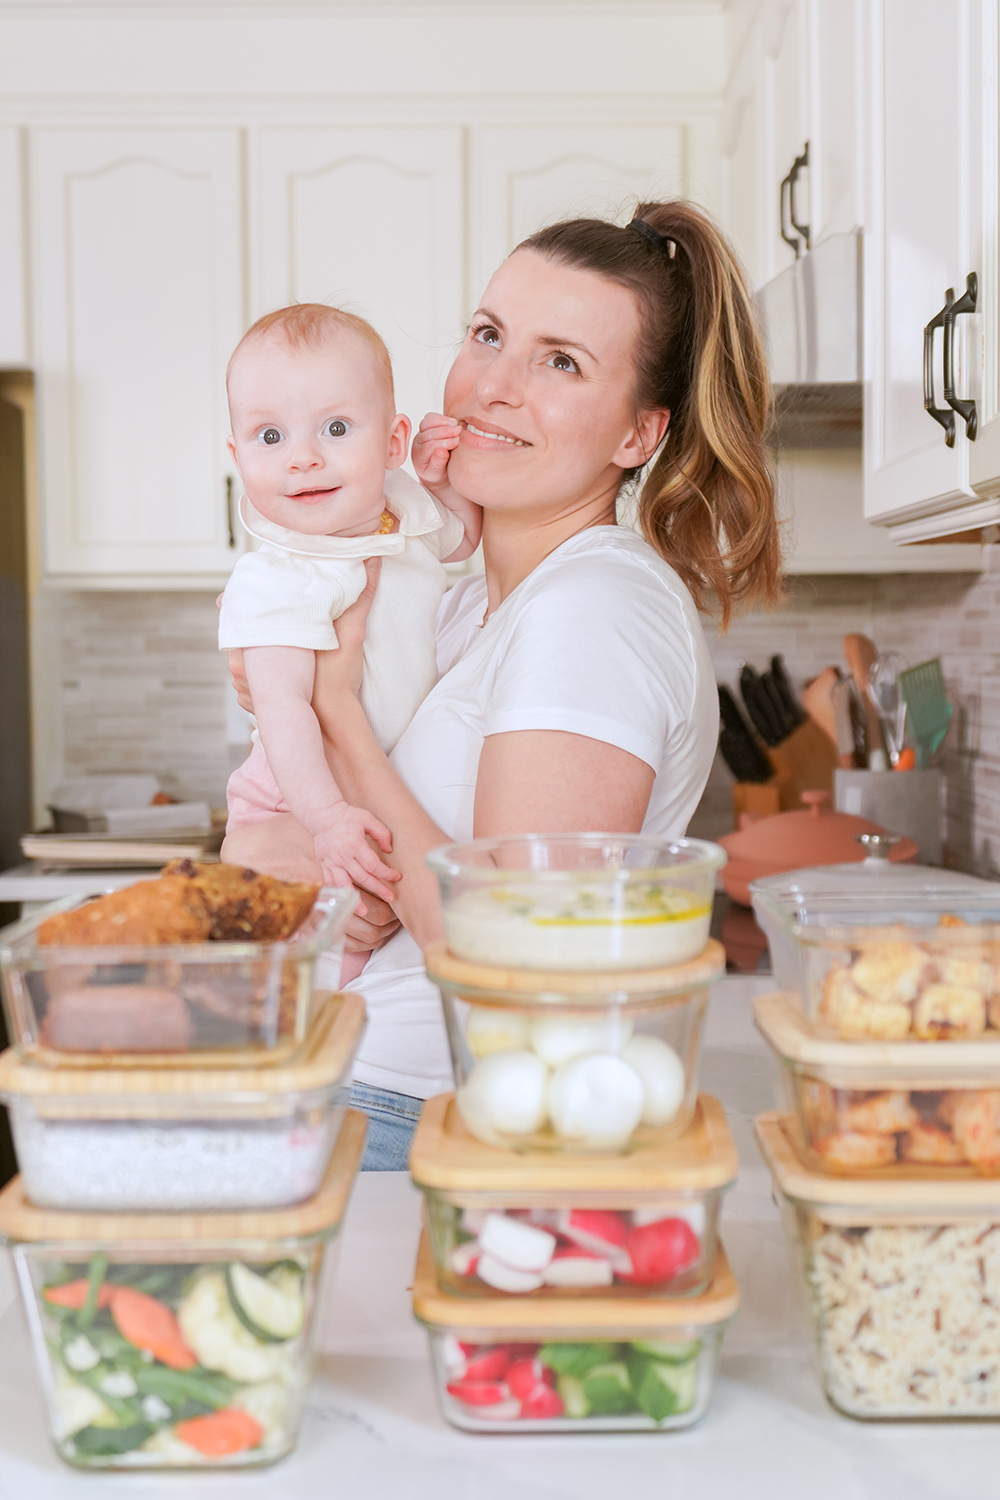 woman and baby in front of meal prepped food